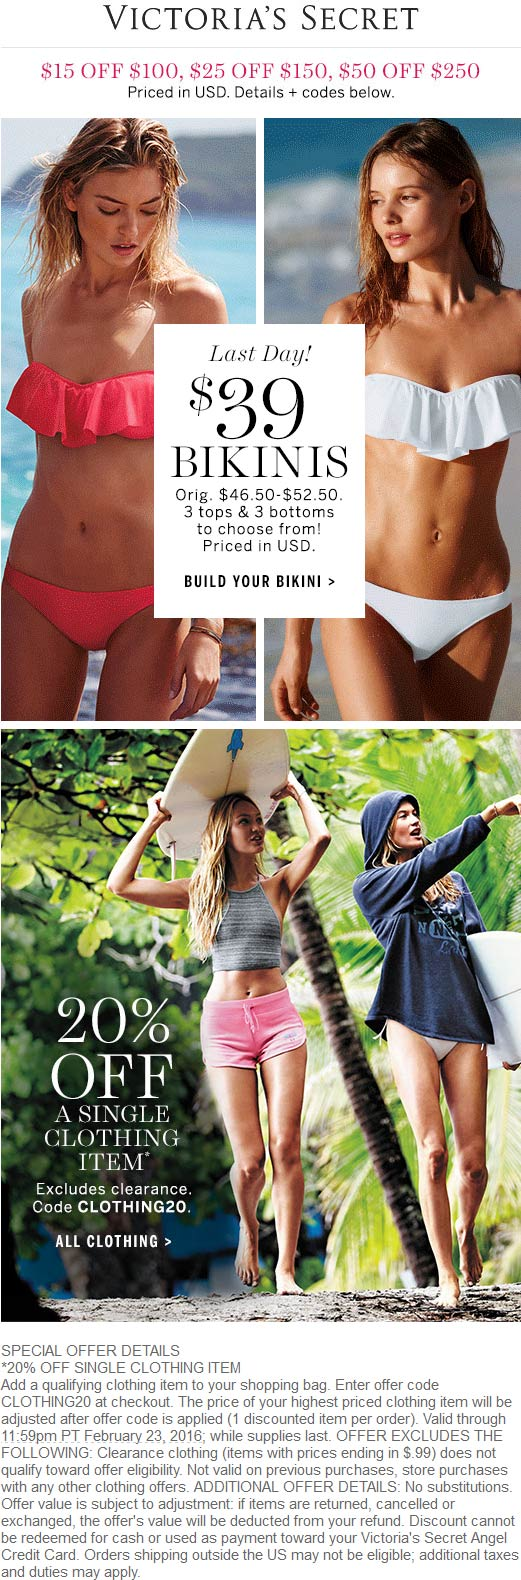 Victorias Secret Coupon June 2017 20% off a single clothing item online at Victorias Secret via promo code CLOTHING20